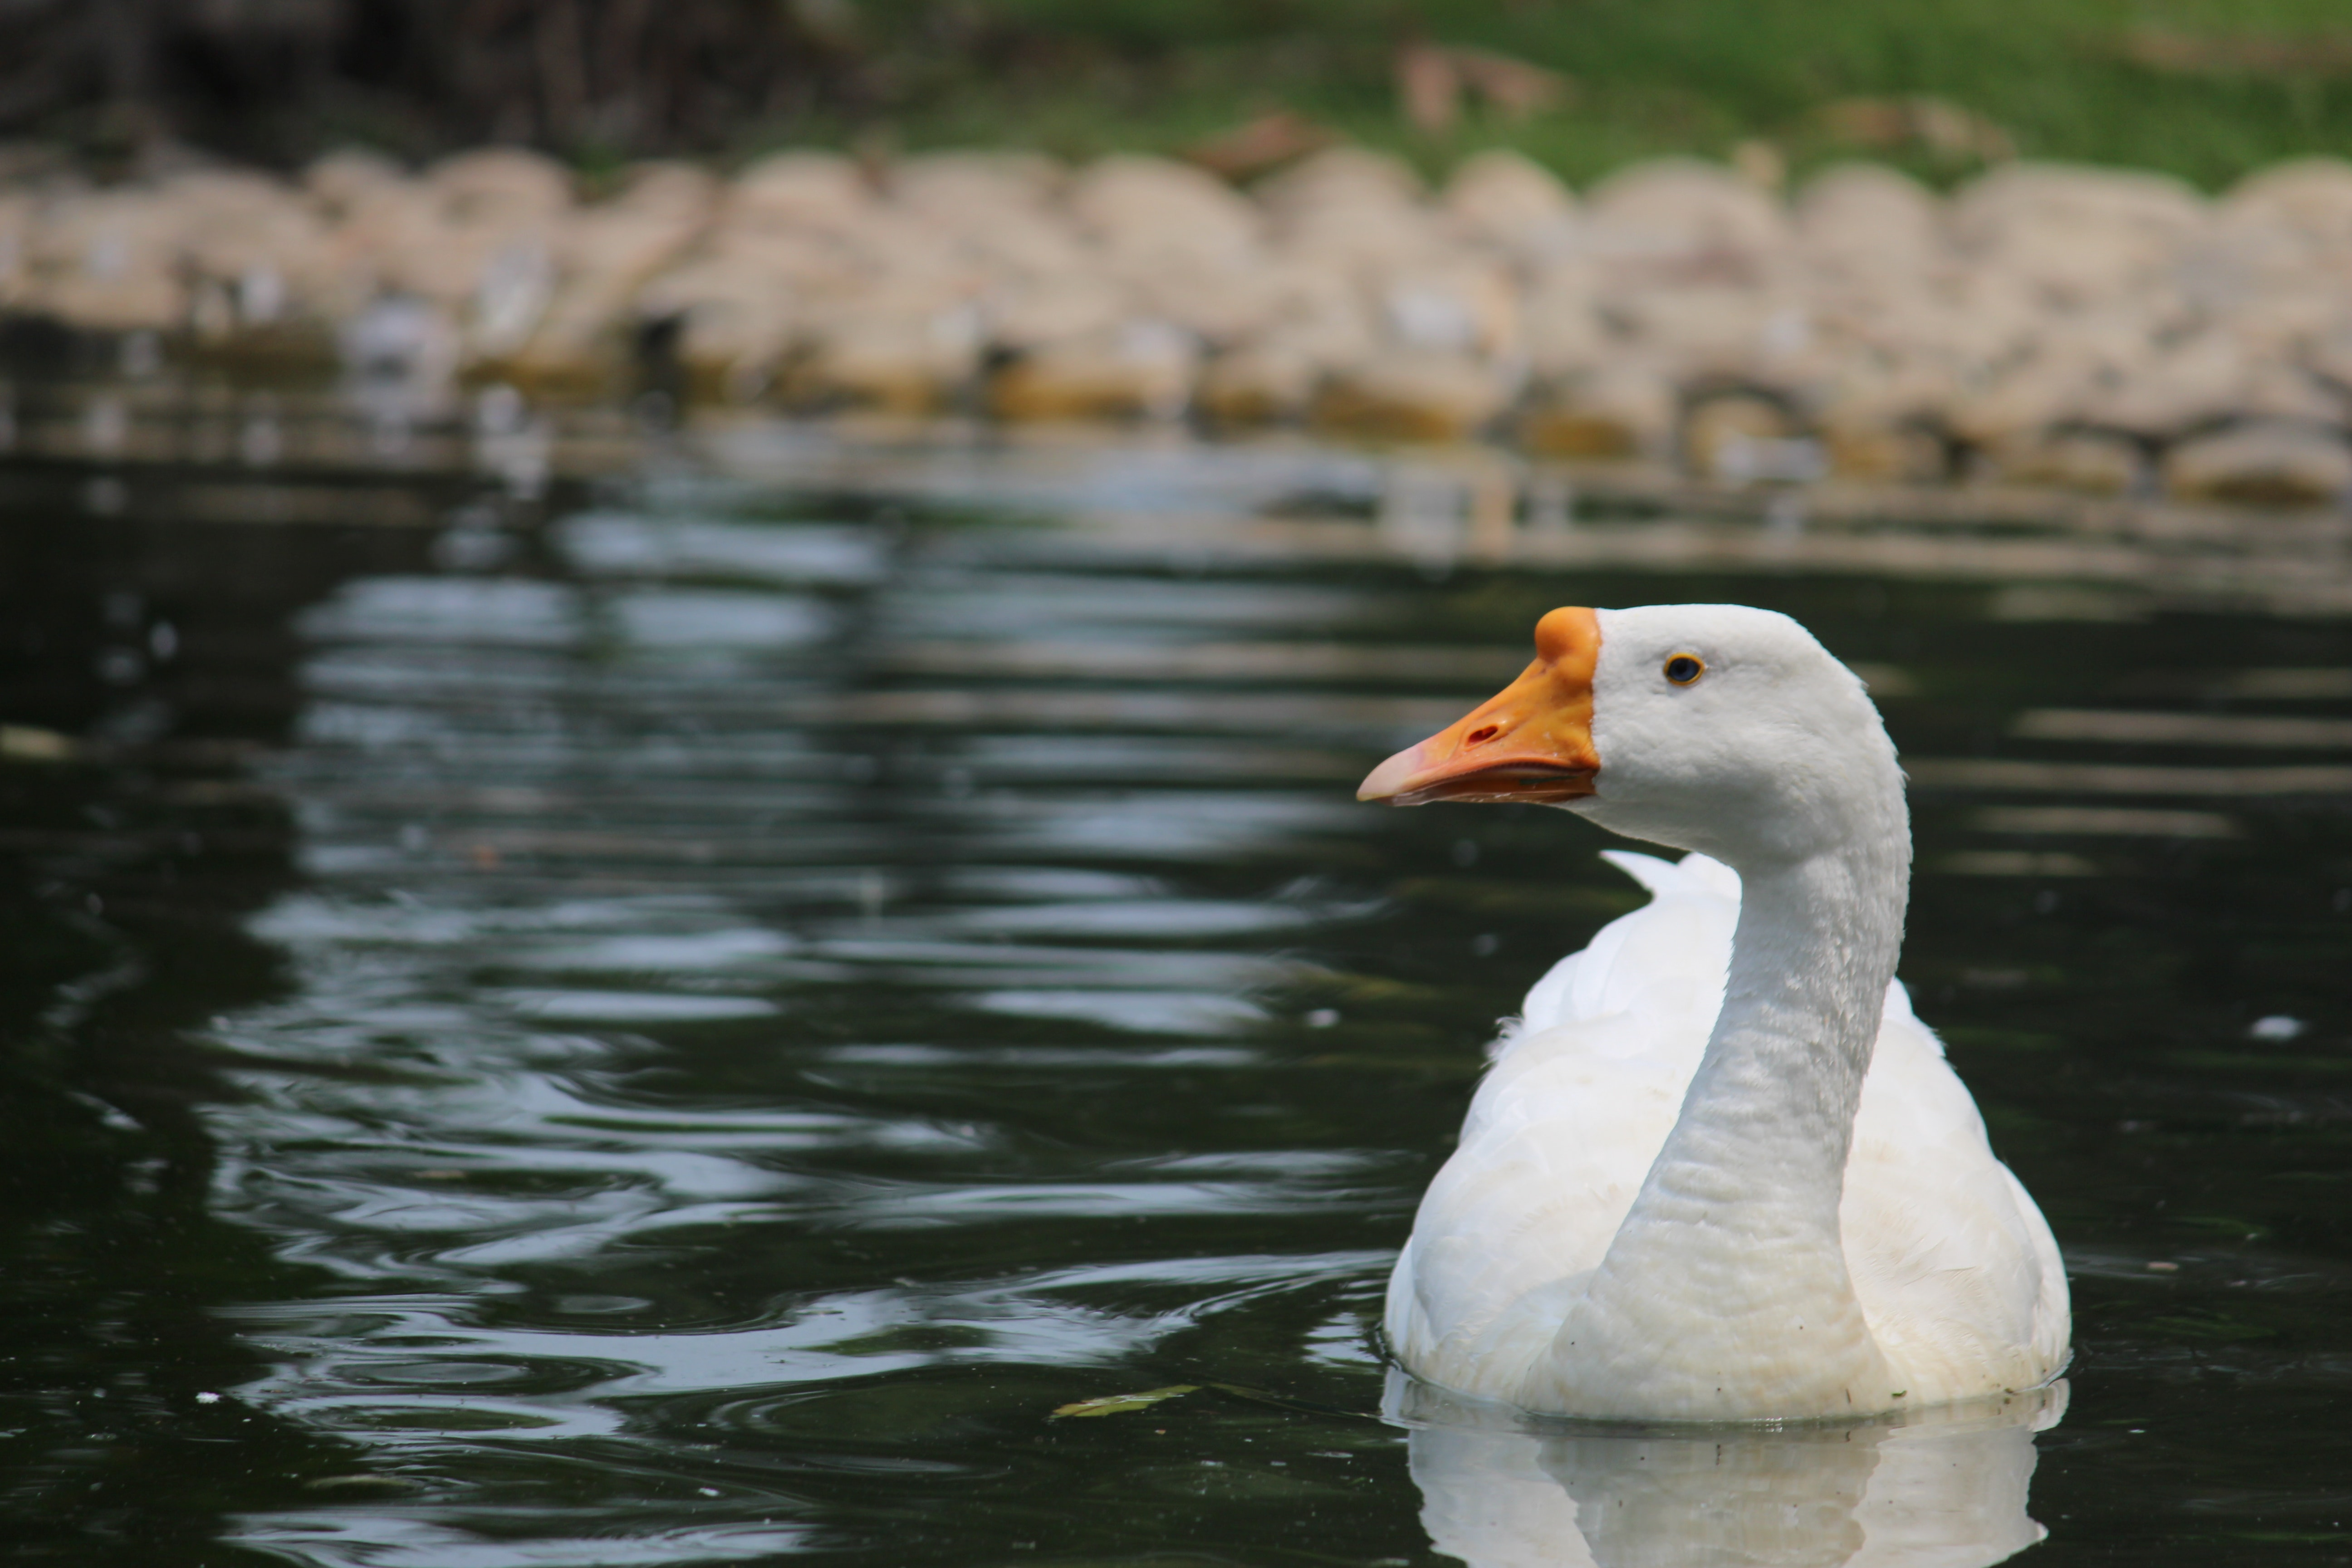 Goose on Body of Water, Animal, Pond, Water bird, Water, HQ Photo